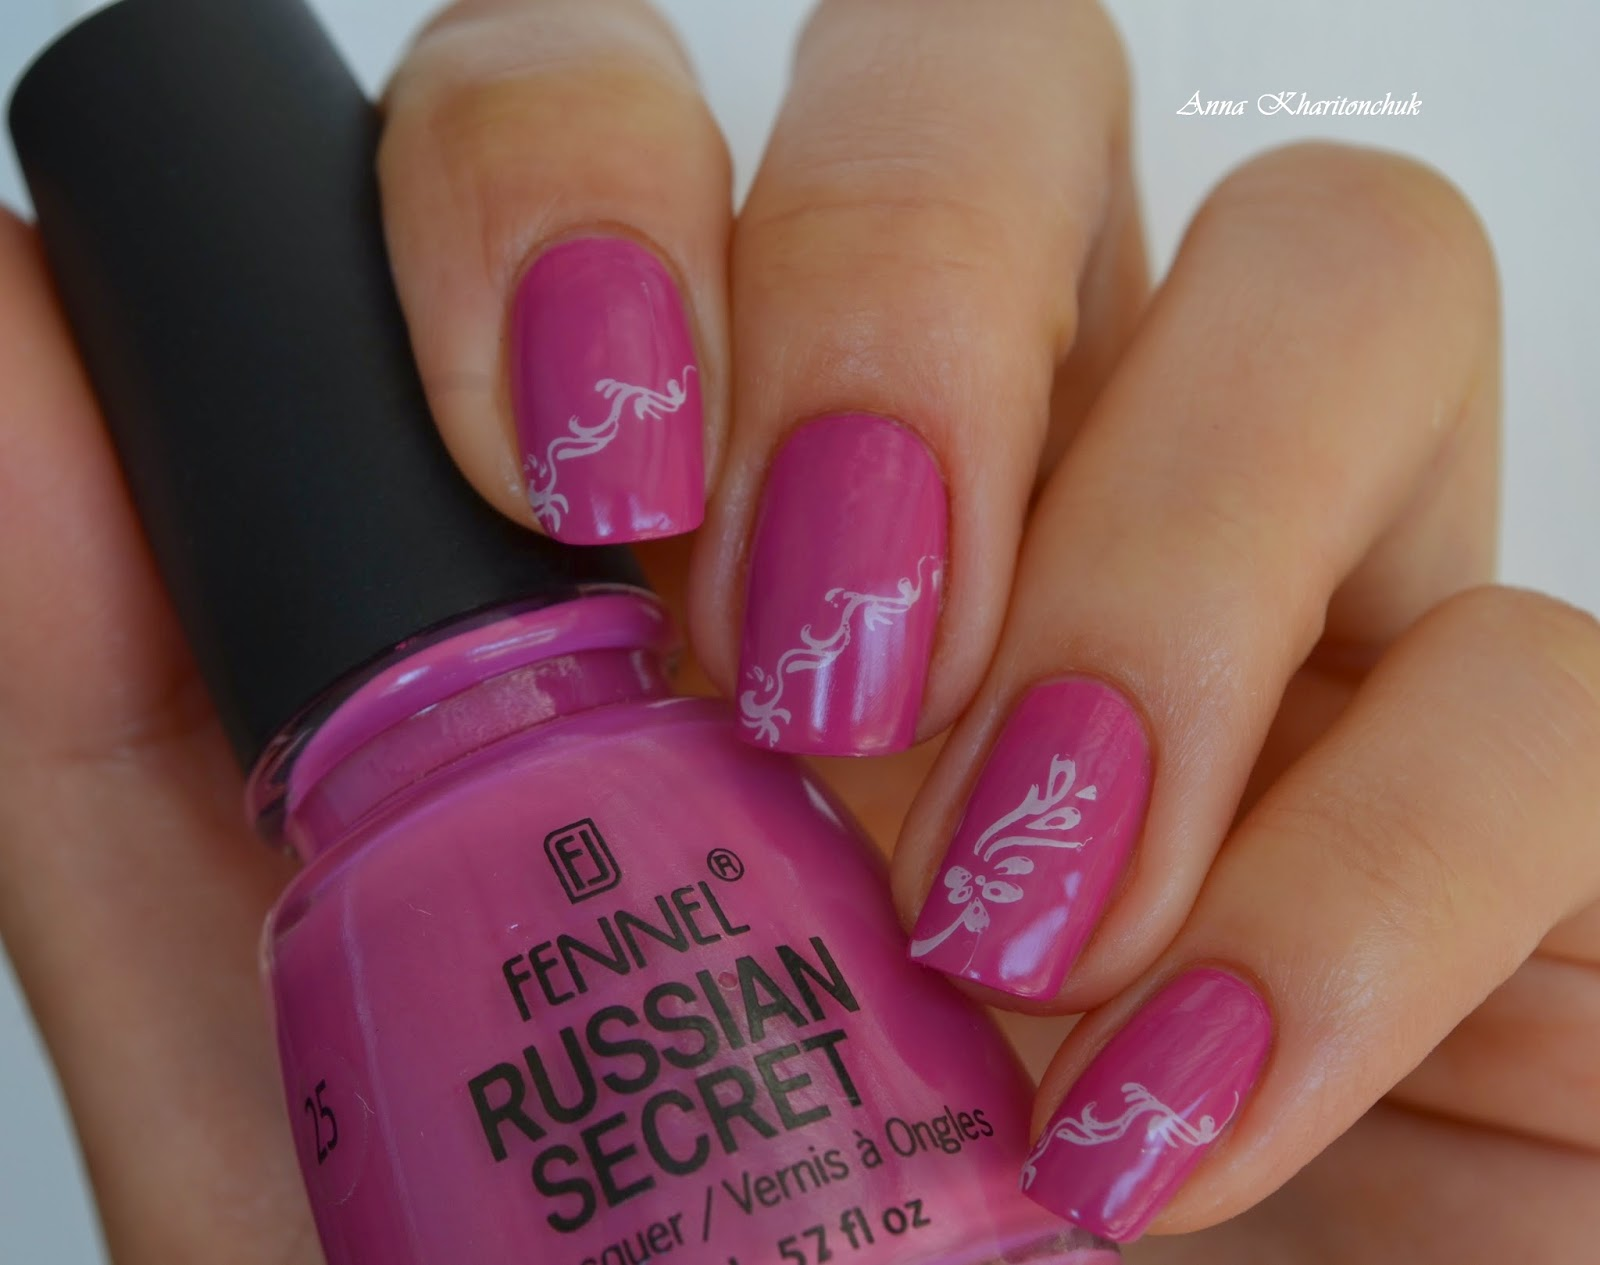 Fennel Russian Secret # 25 + стемпинг